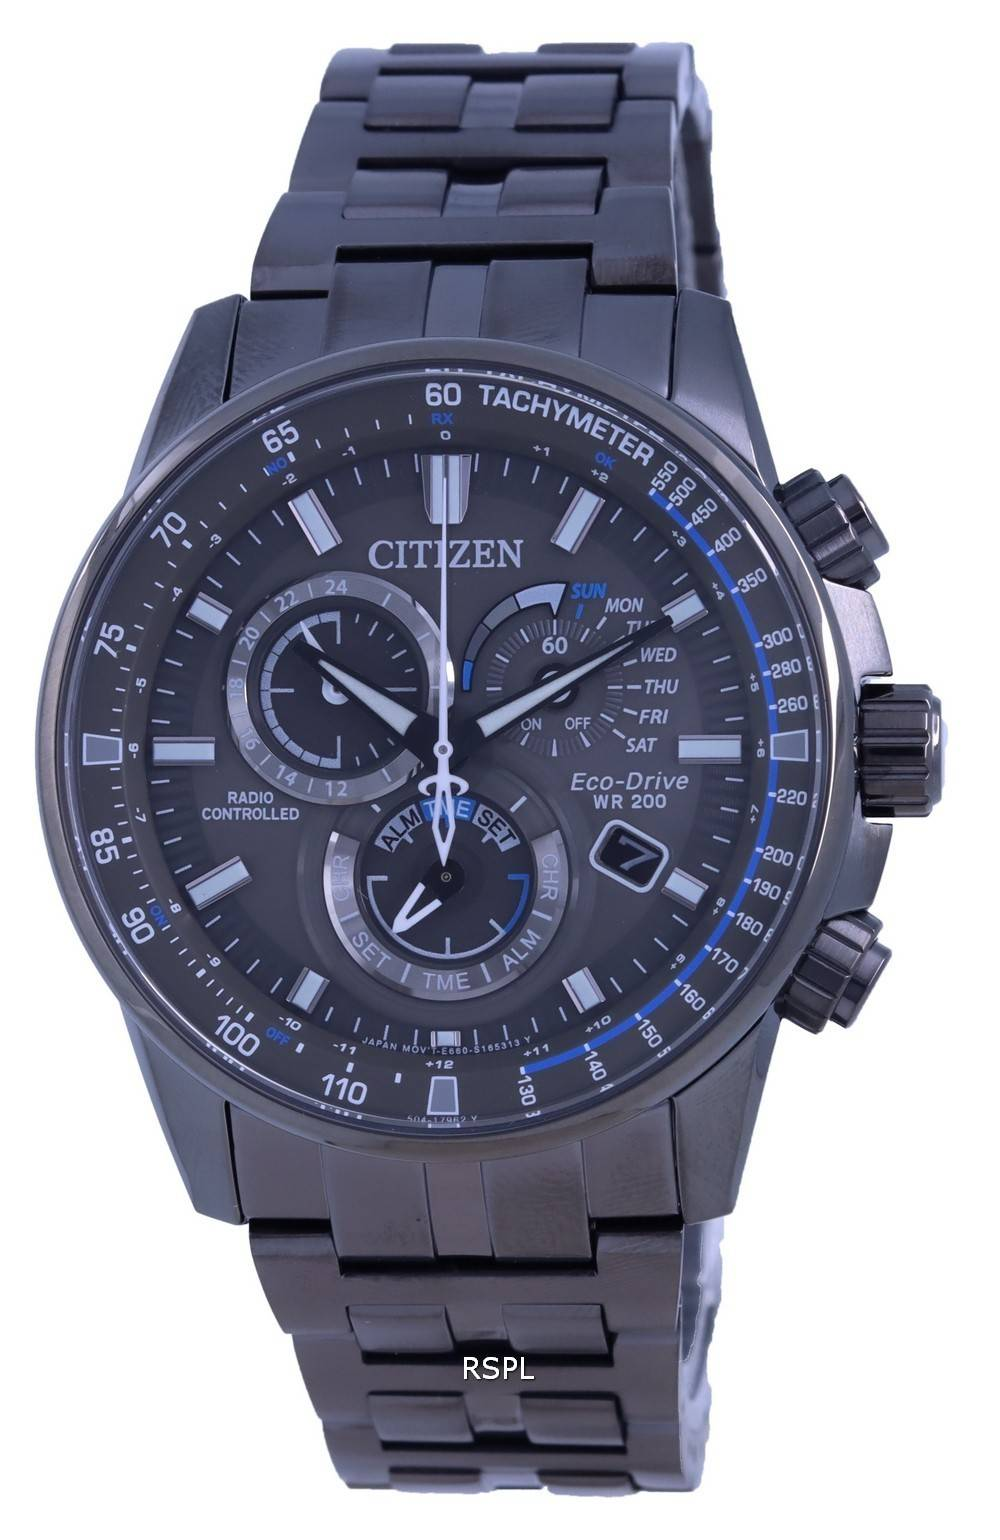 Citizen PCAT Black Dial Radio Controlled Chronograph Atomic Eco-Drive CB5887-55H 200M Mens Watch